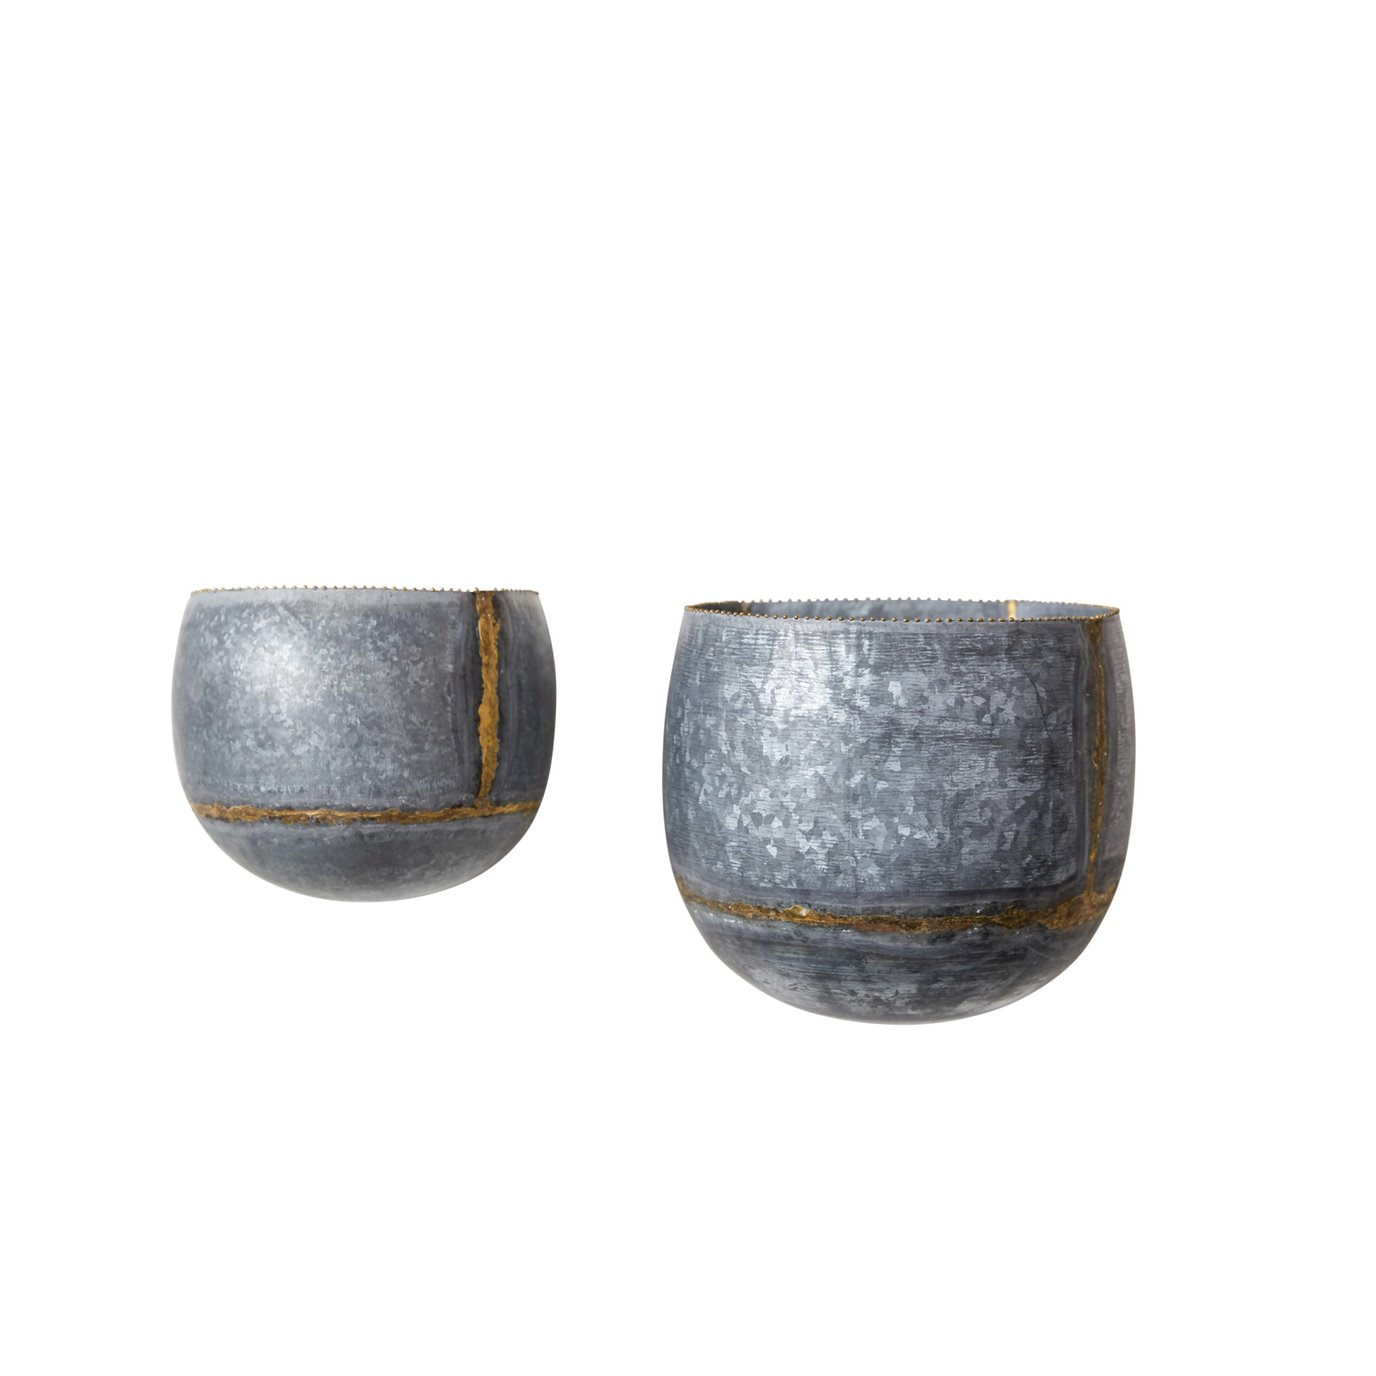 Silver & Gold Metal Wall Planters (Set of 2 Sizes)